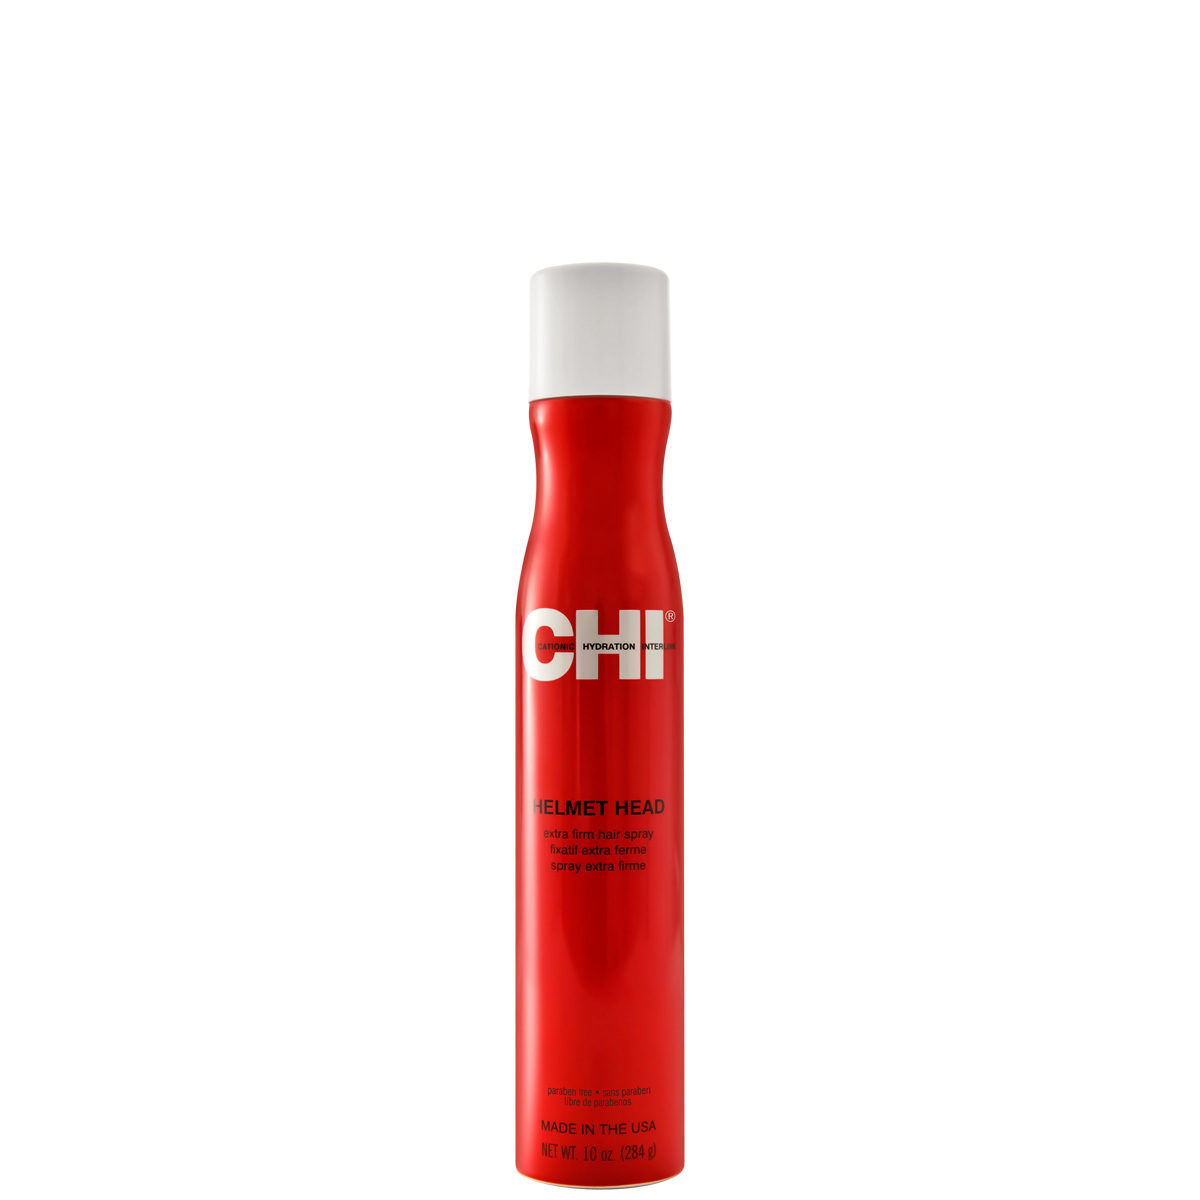 CHI Helmet Head Hair Spray